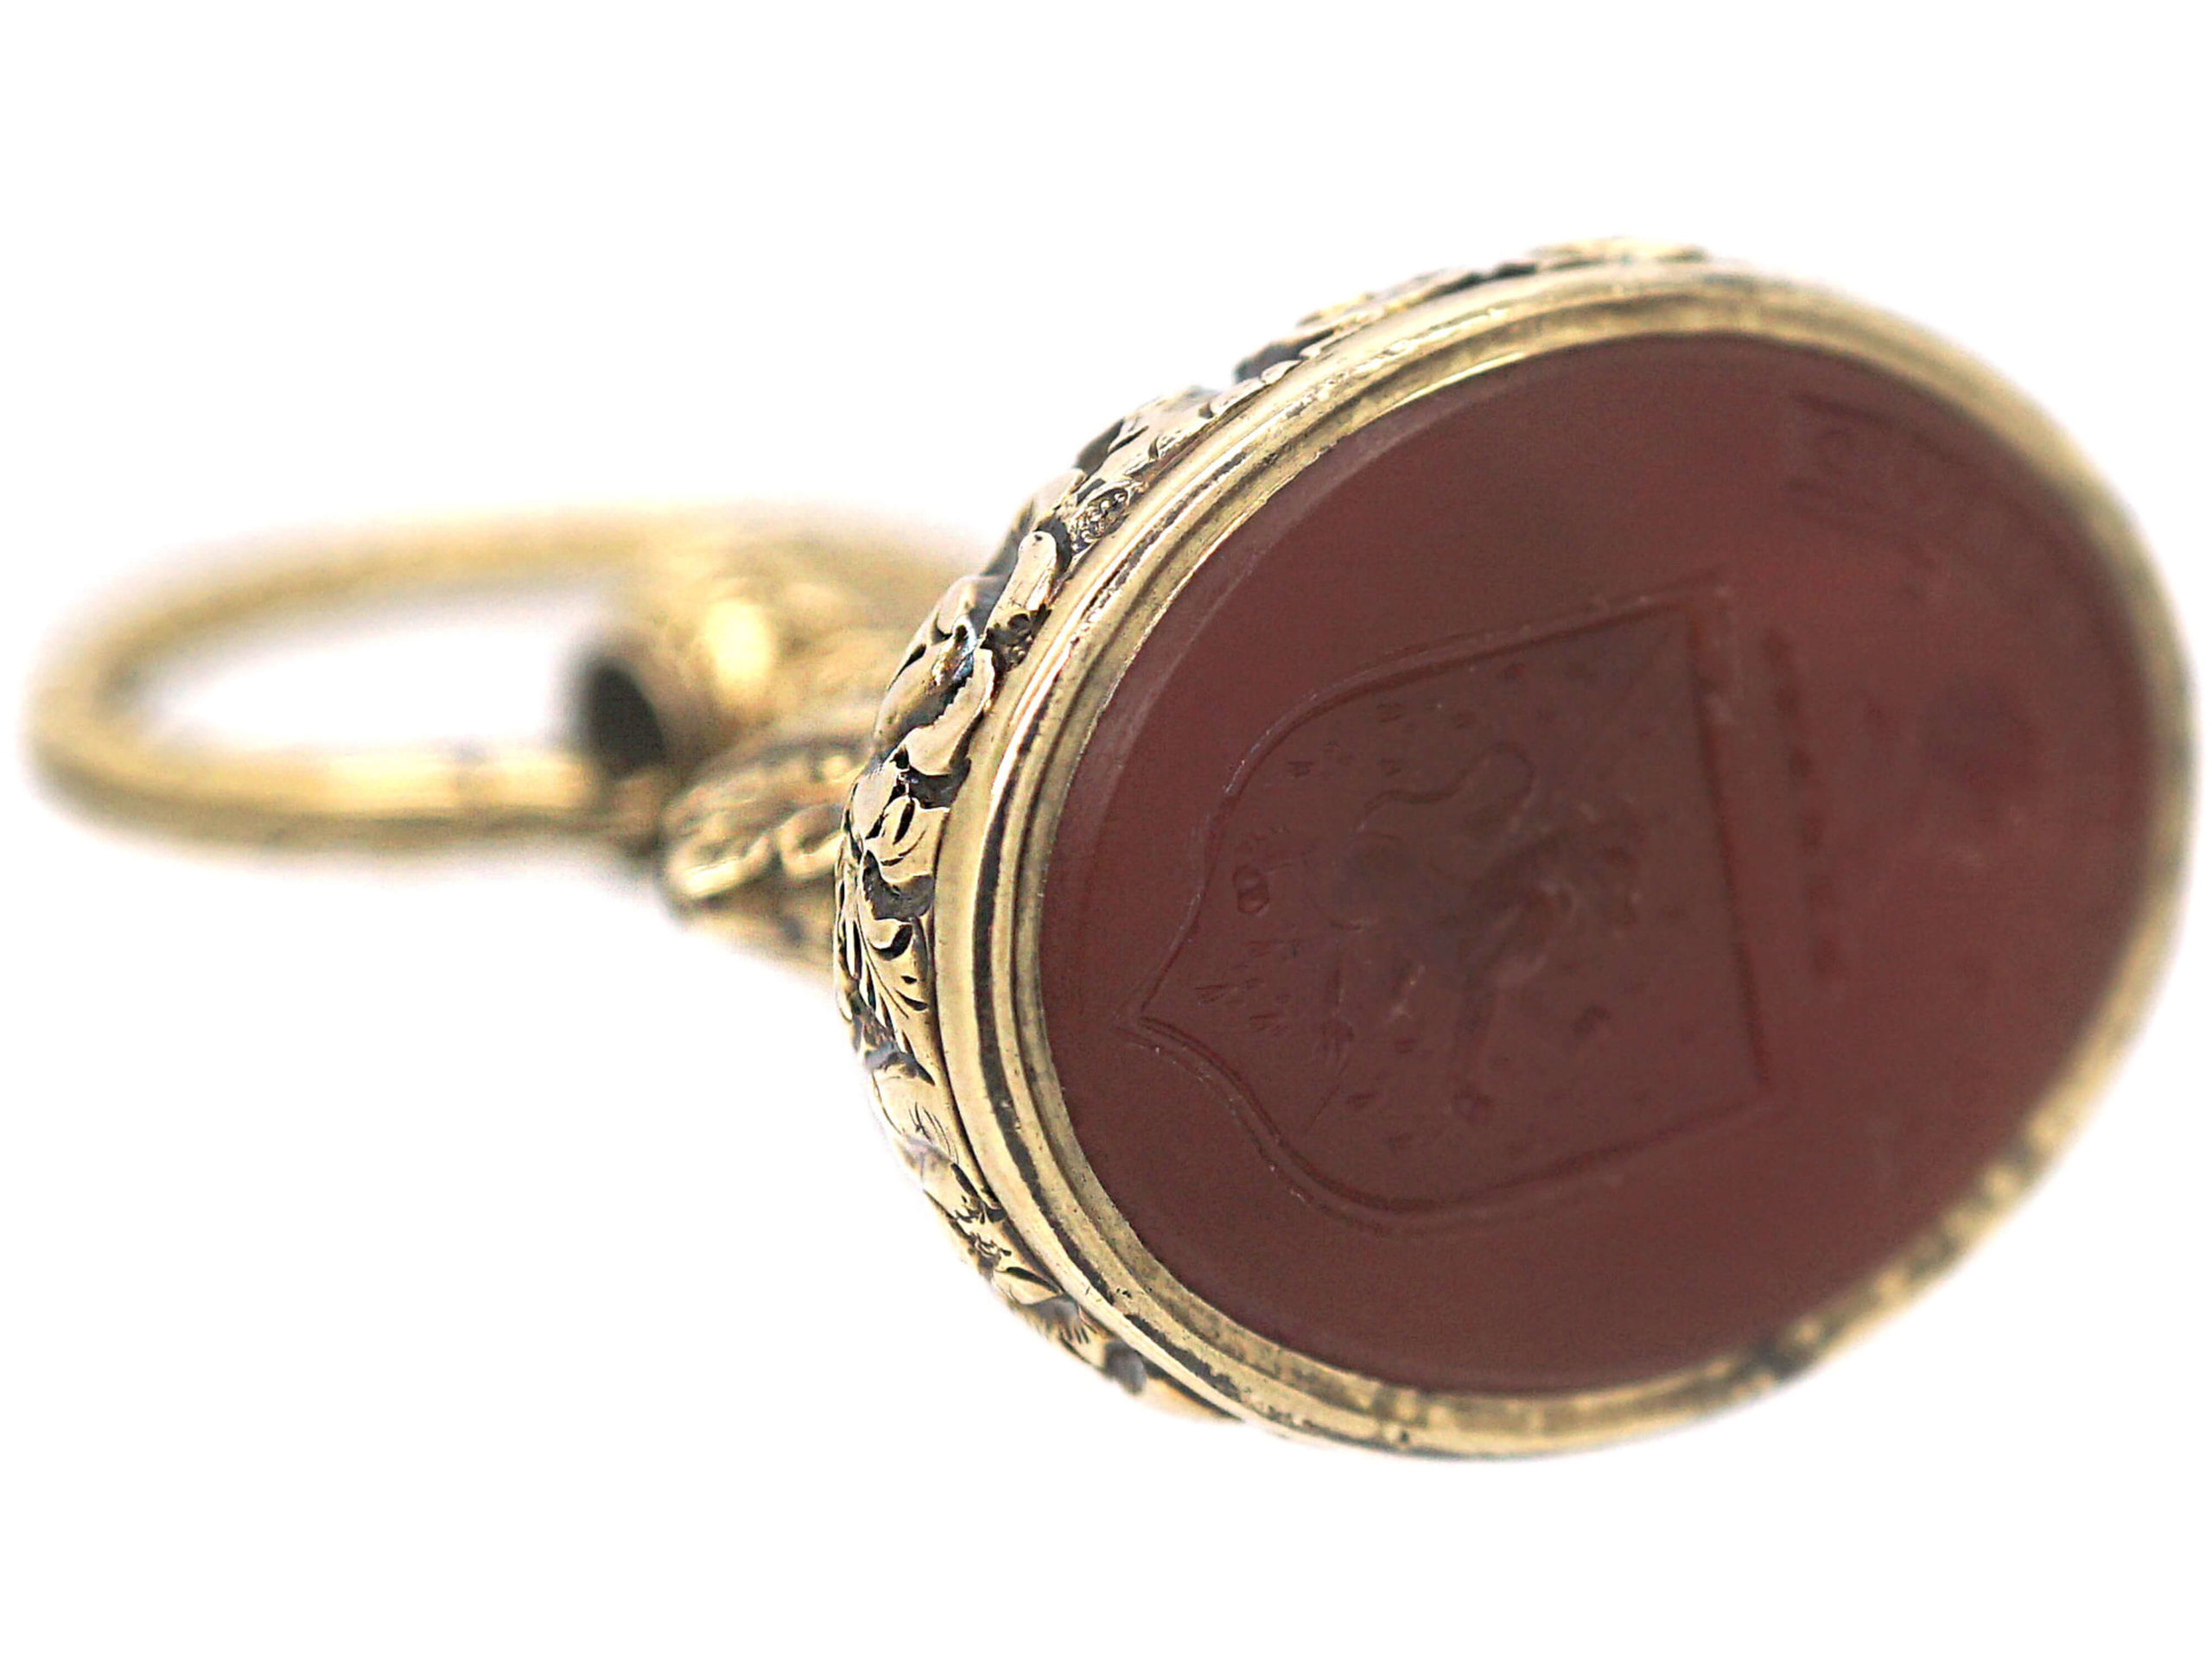 Large Georgian 18ct Gold Cased Seal with Carnelian Intaglio Of a Crest on Original Split Ring